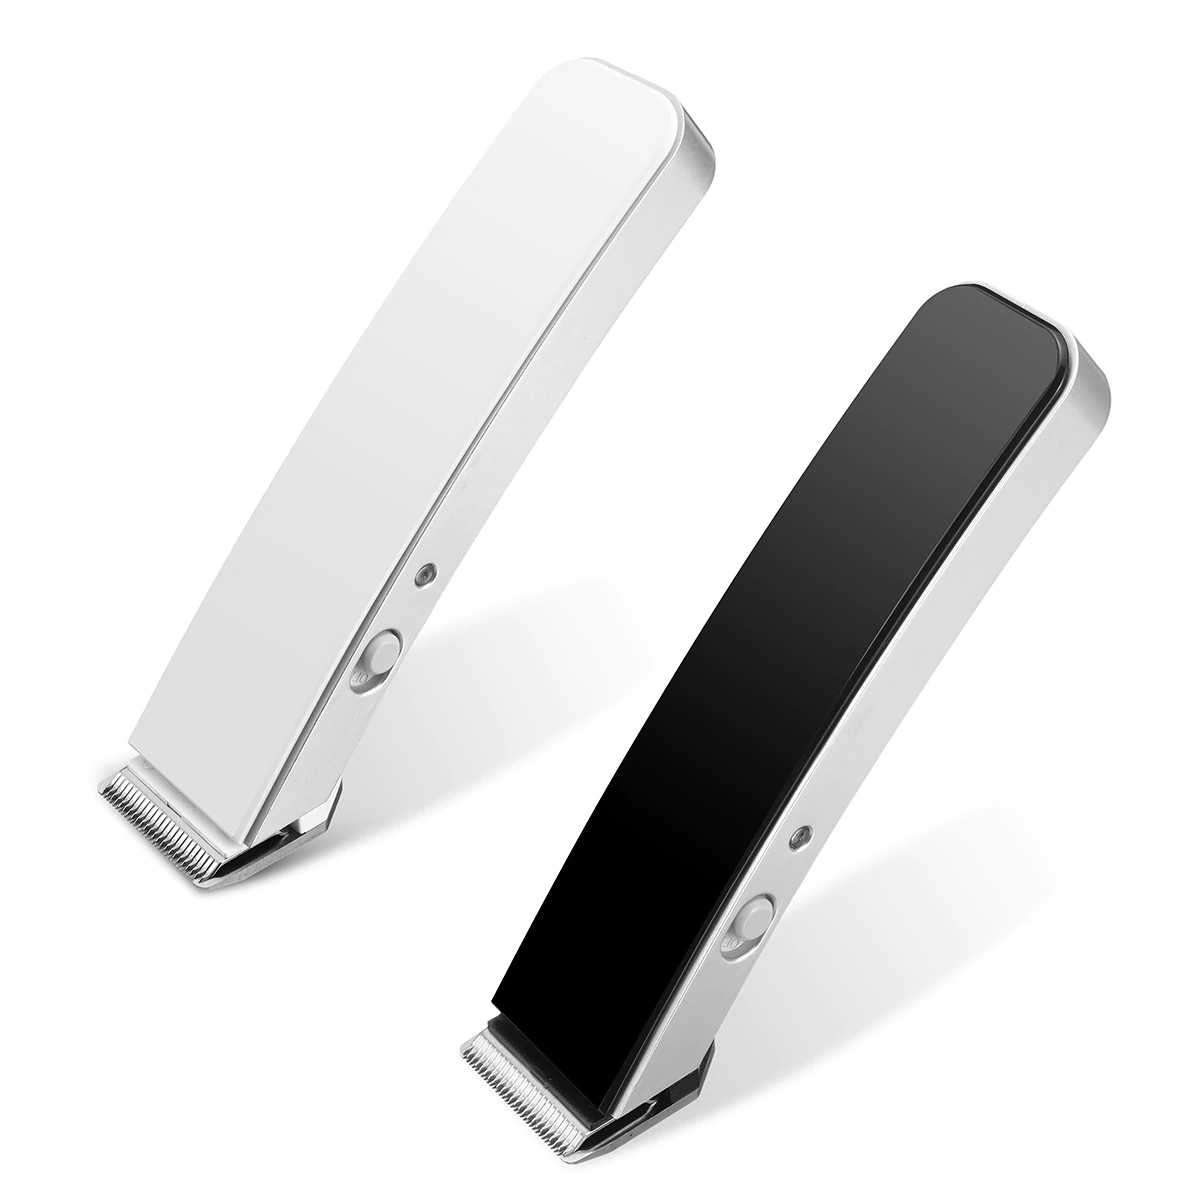 CAREMEN™: Wireless Professional Hair Trimmer